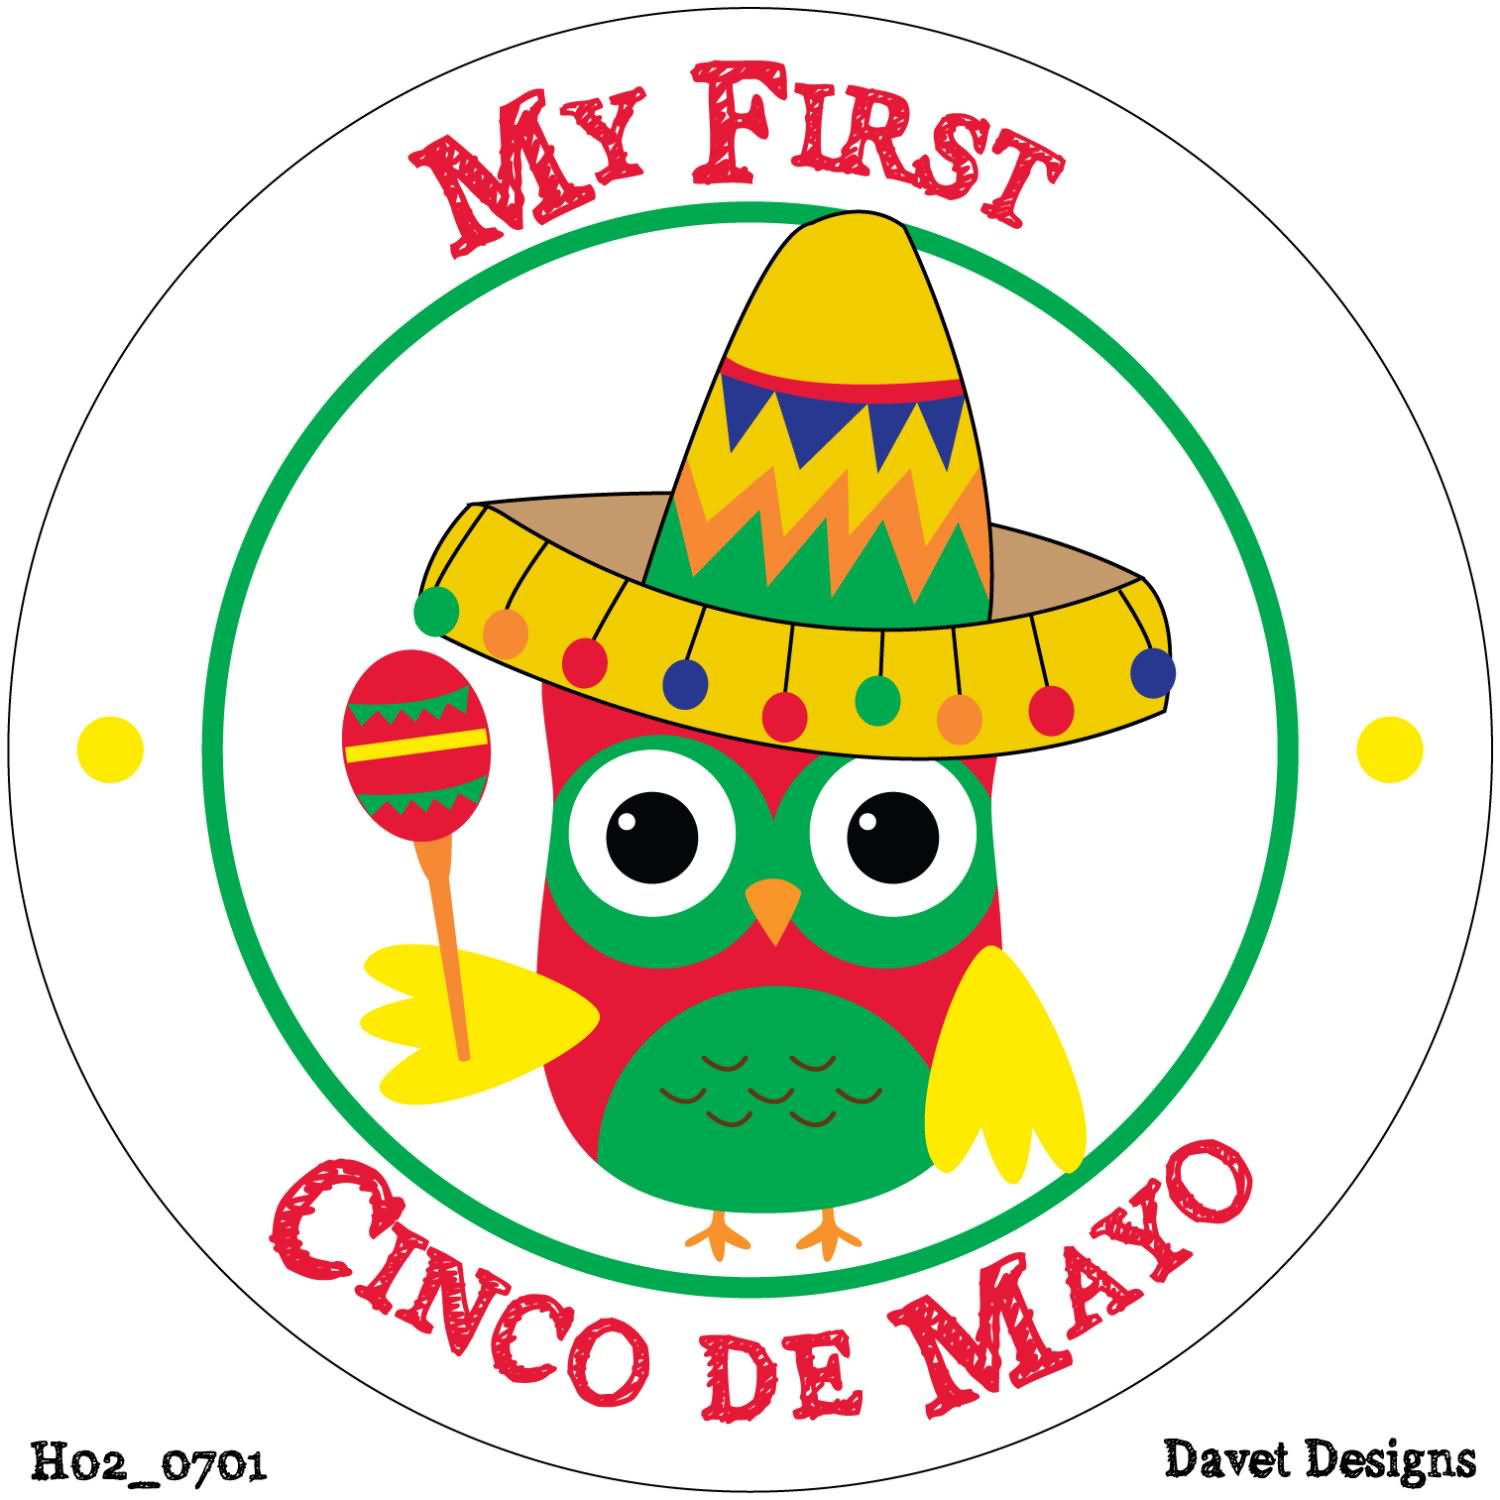 40 cinco de mayo 2016 greeting pictures and images my first cinco de mayo baby bird with sombrero and maracas picture kristyandbryce Gallery